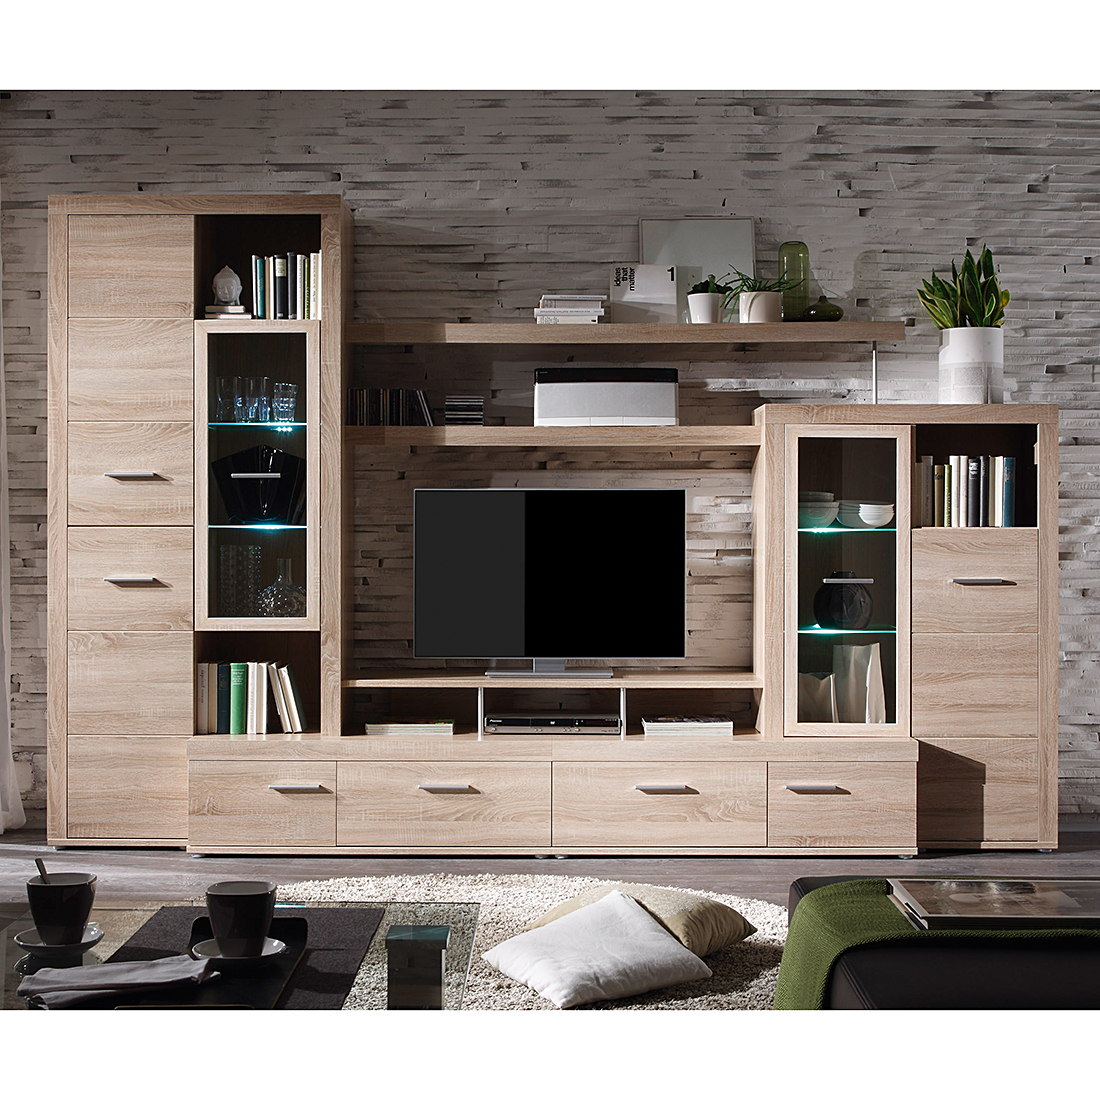 wohnwand holzoptik g nstig. Black Bedroom Furniture Sets. Home Design Ideas